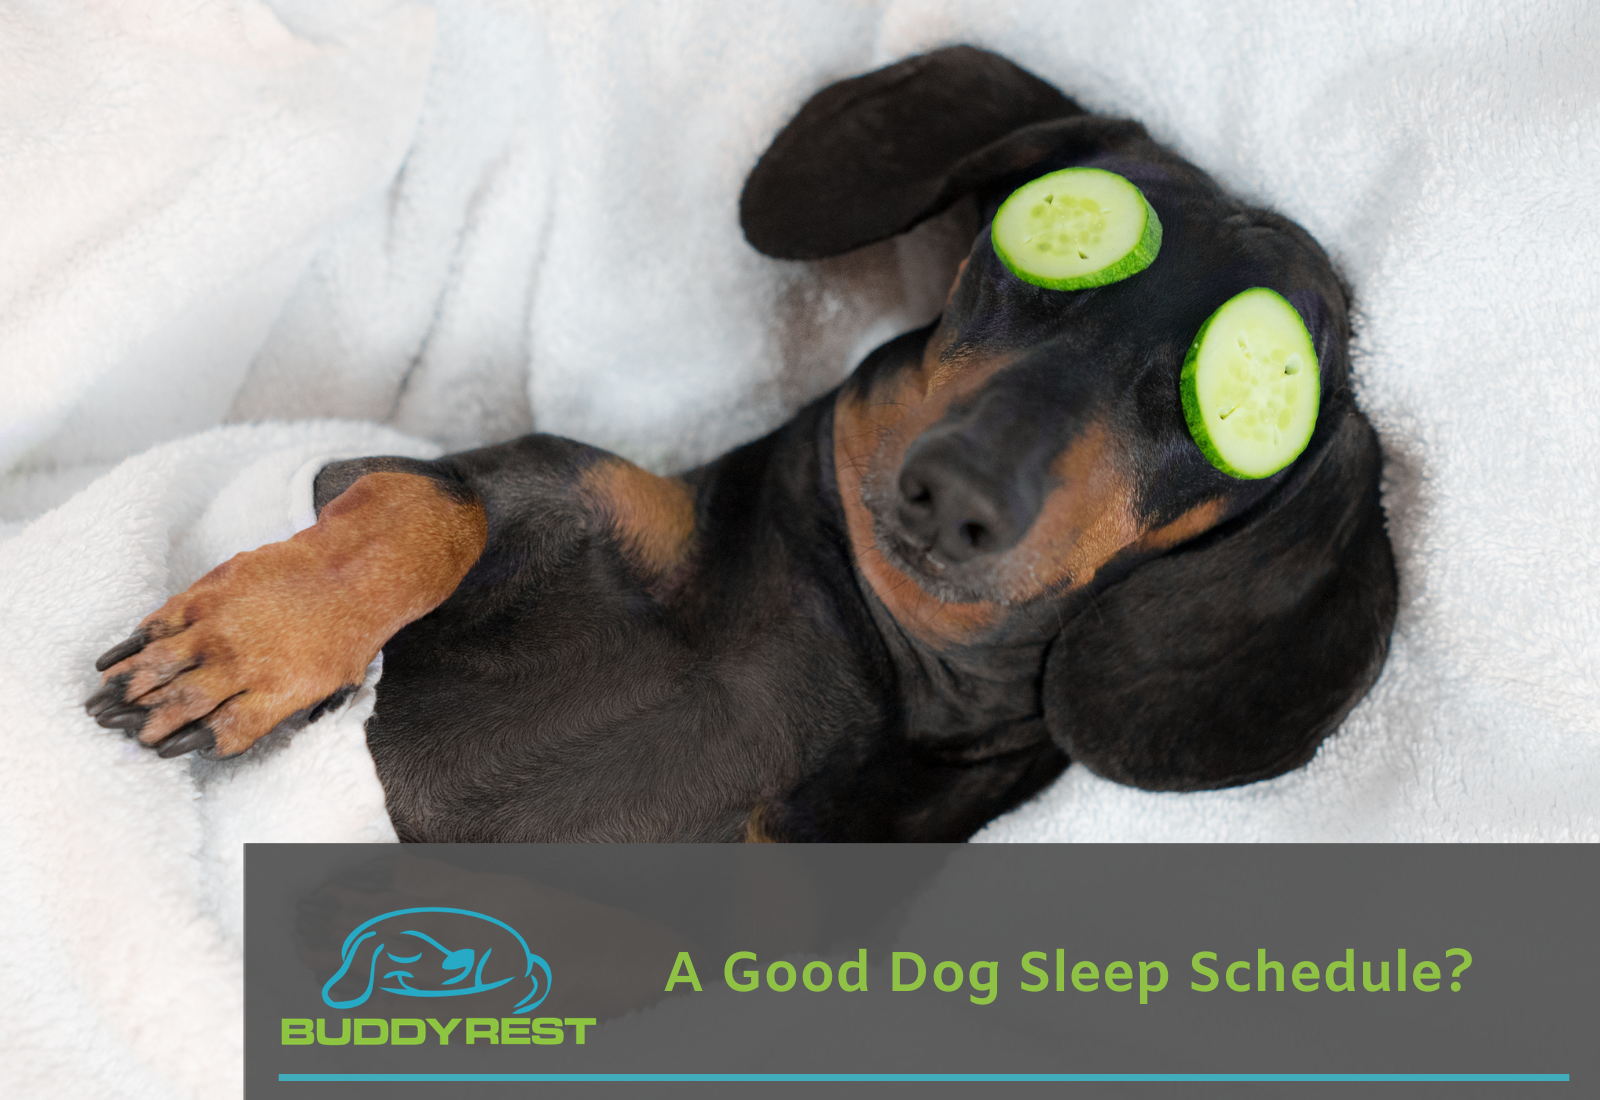 A Good Dog Sleep Schedule?